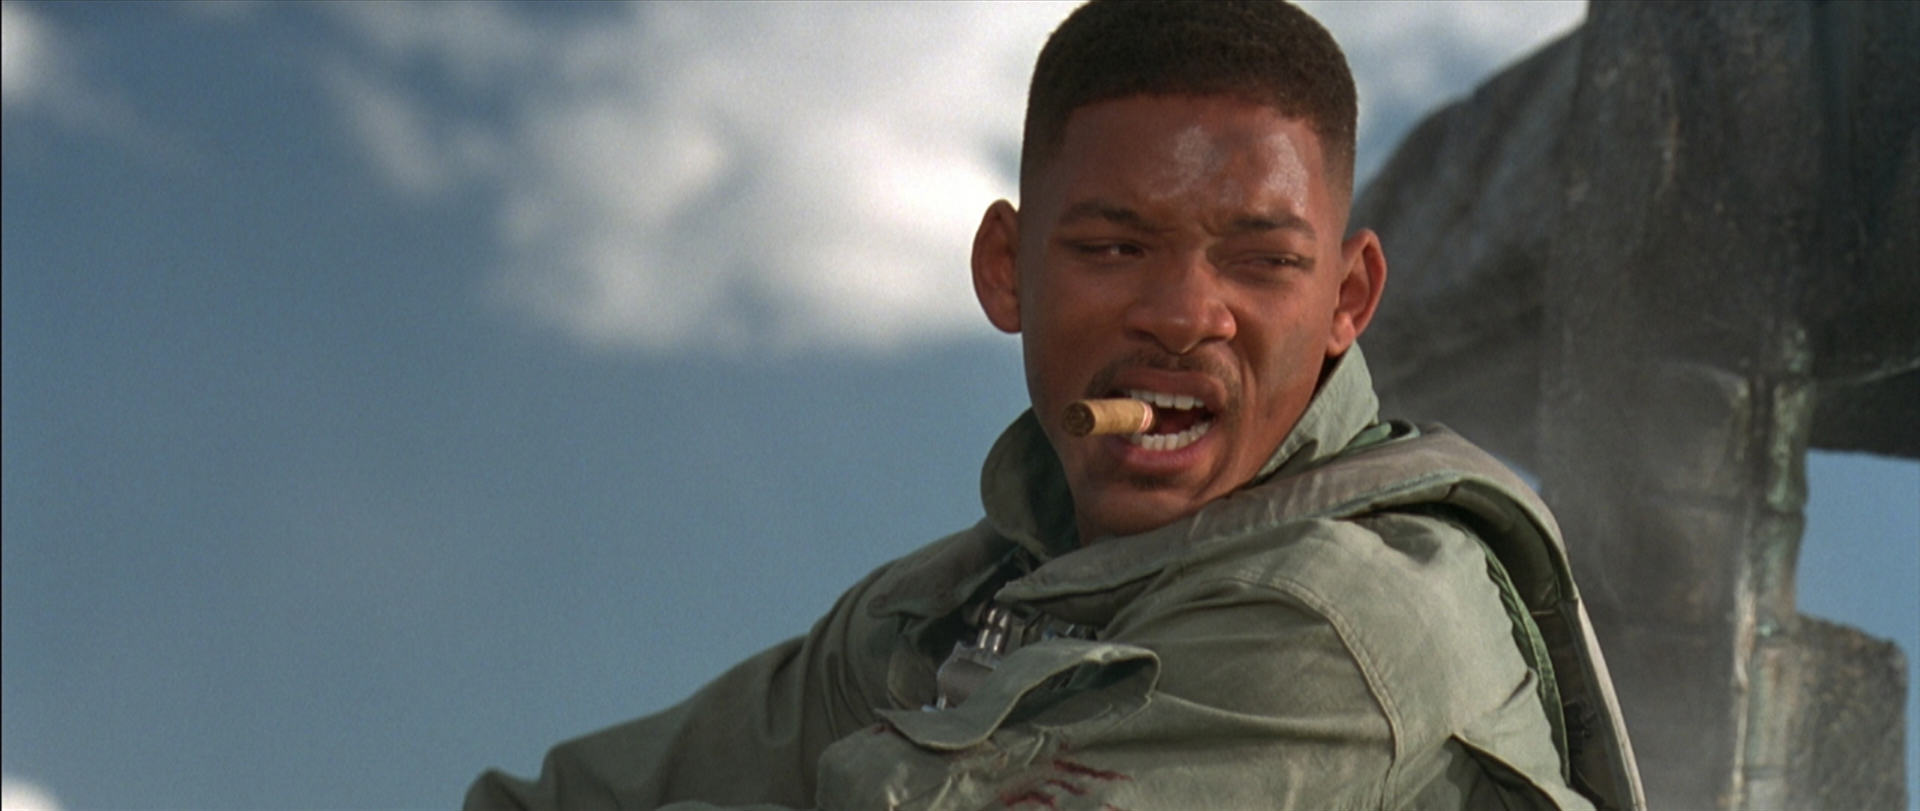 Independence Day 2 Is Happening, Green Light Given For Sequel independence day will smith welcome to earth close encounter